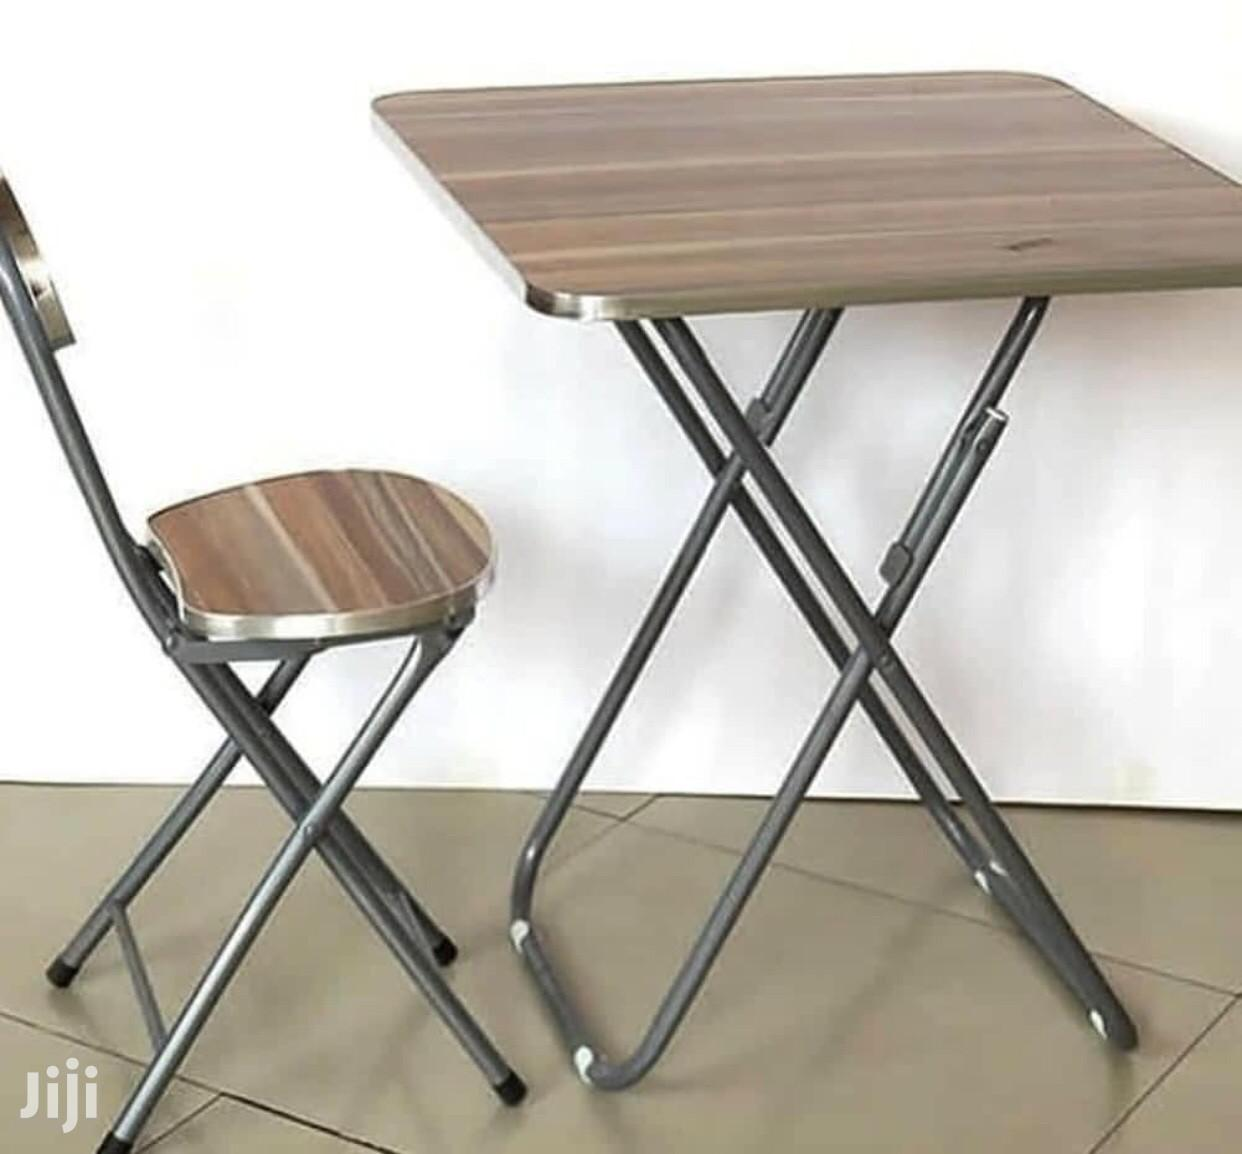 Chair And Table | Furniture for sale in Ilupeju, Lagos State, Nigeria